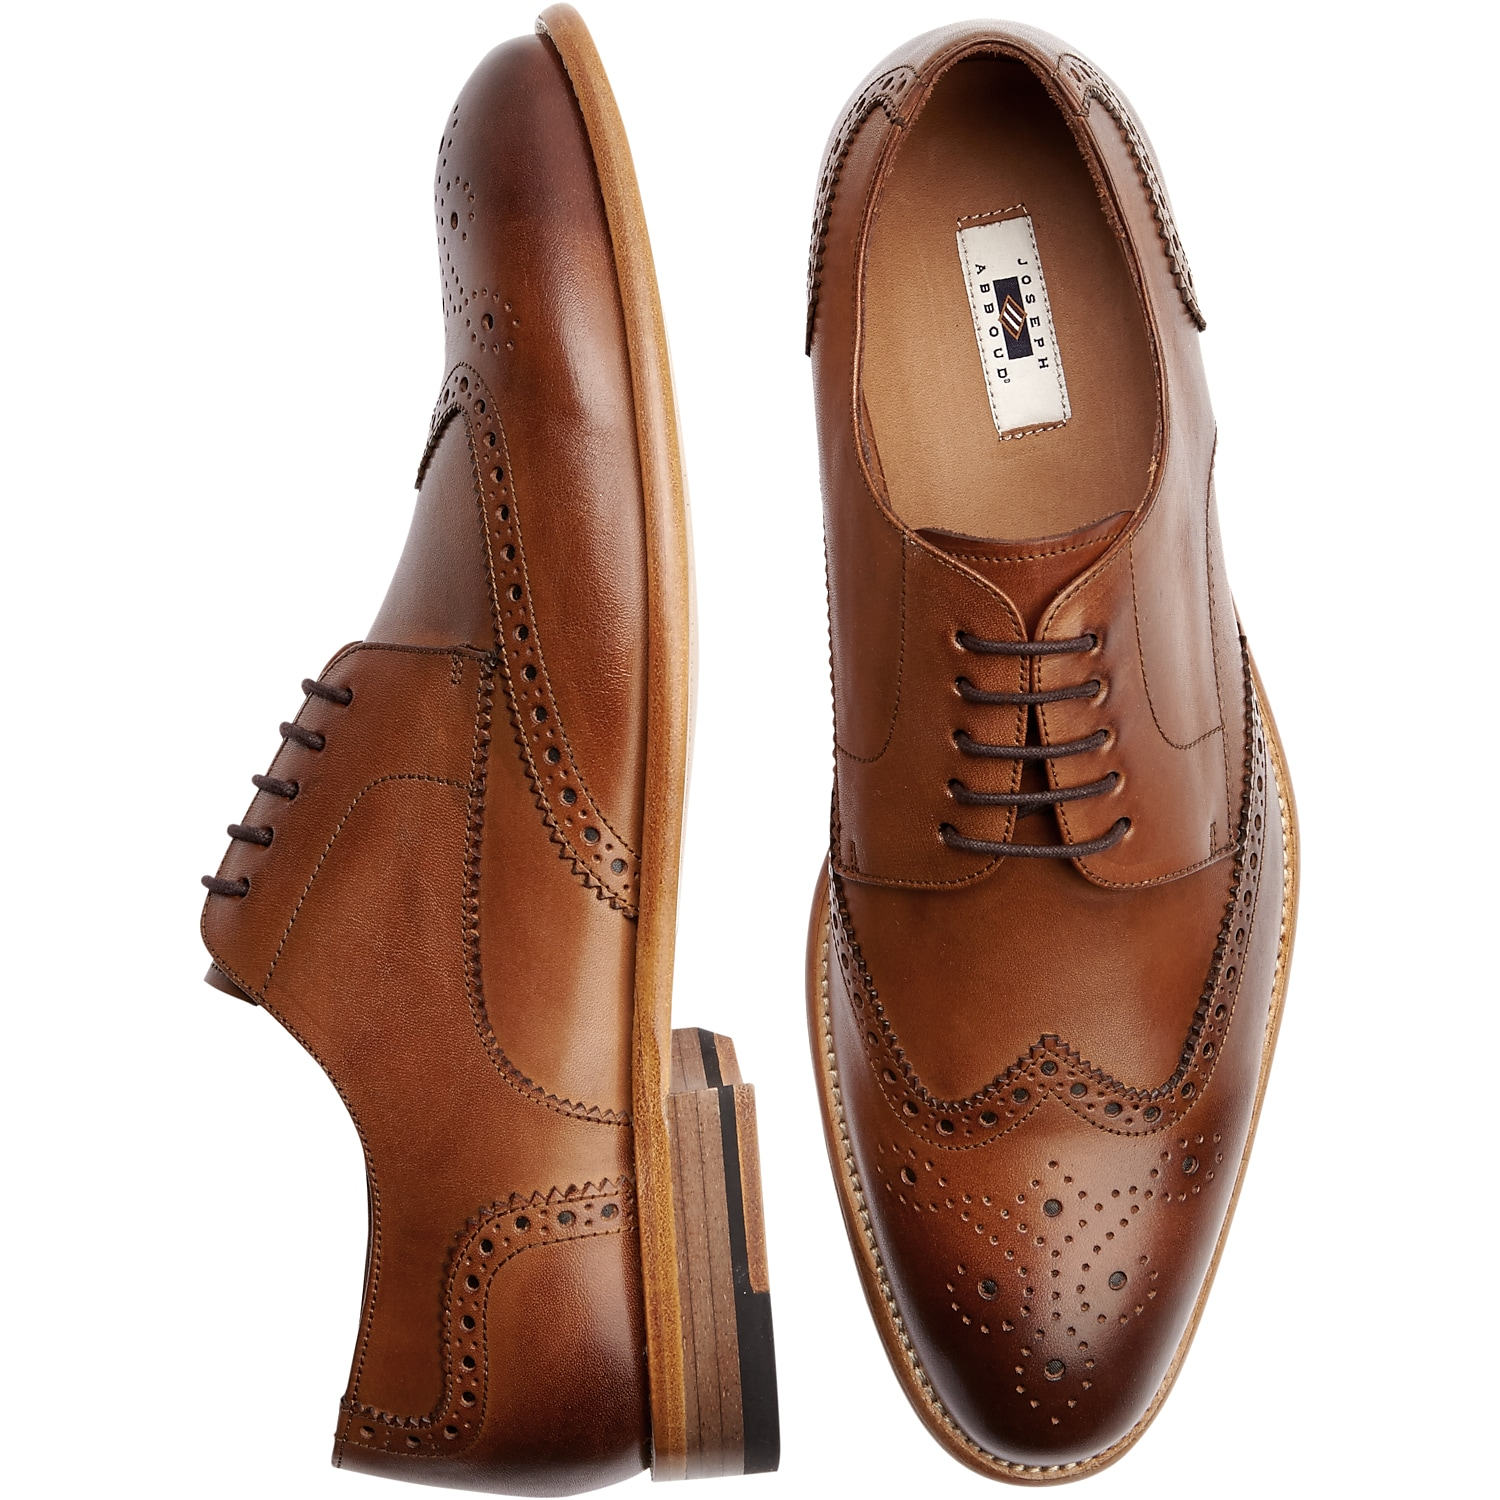 Mens Home - Joseph Abboud Barstow Brown Wingtip Lace Up Dress Shoes - Men's Wearhouse